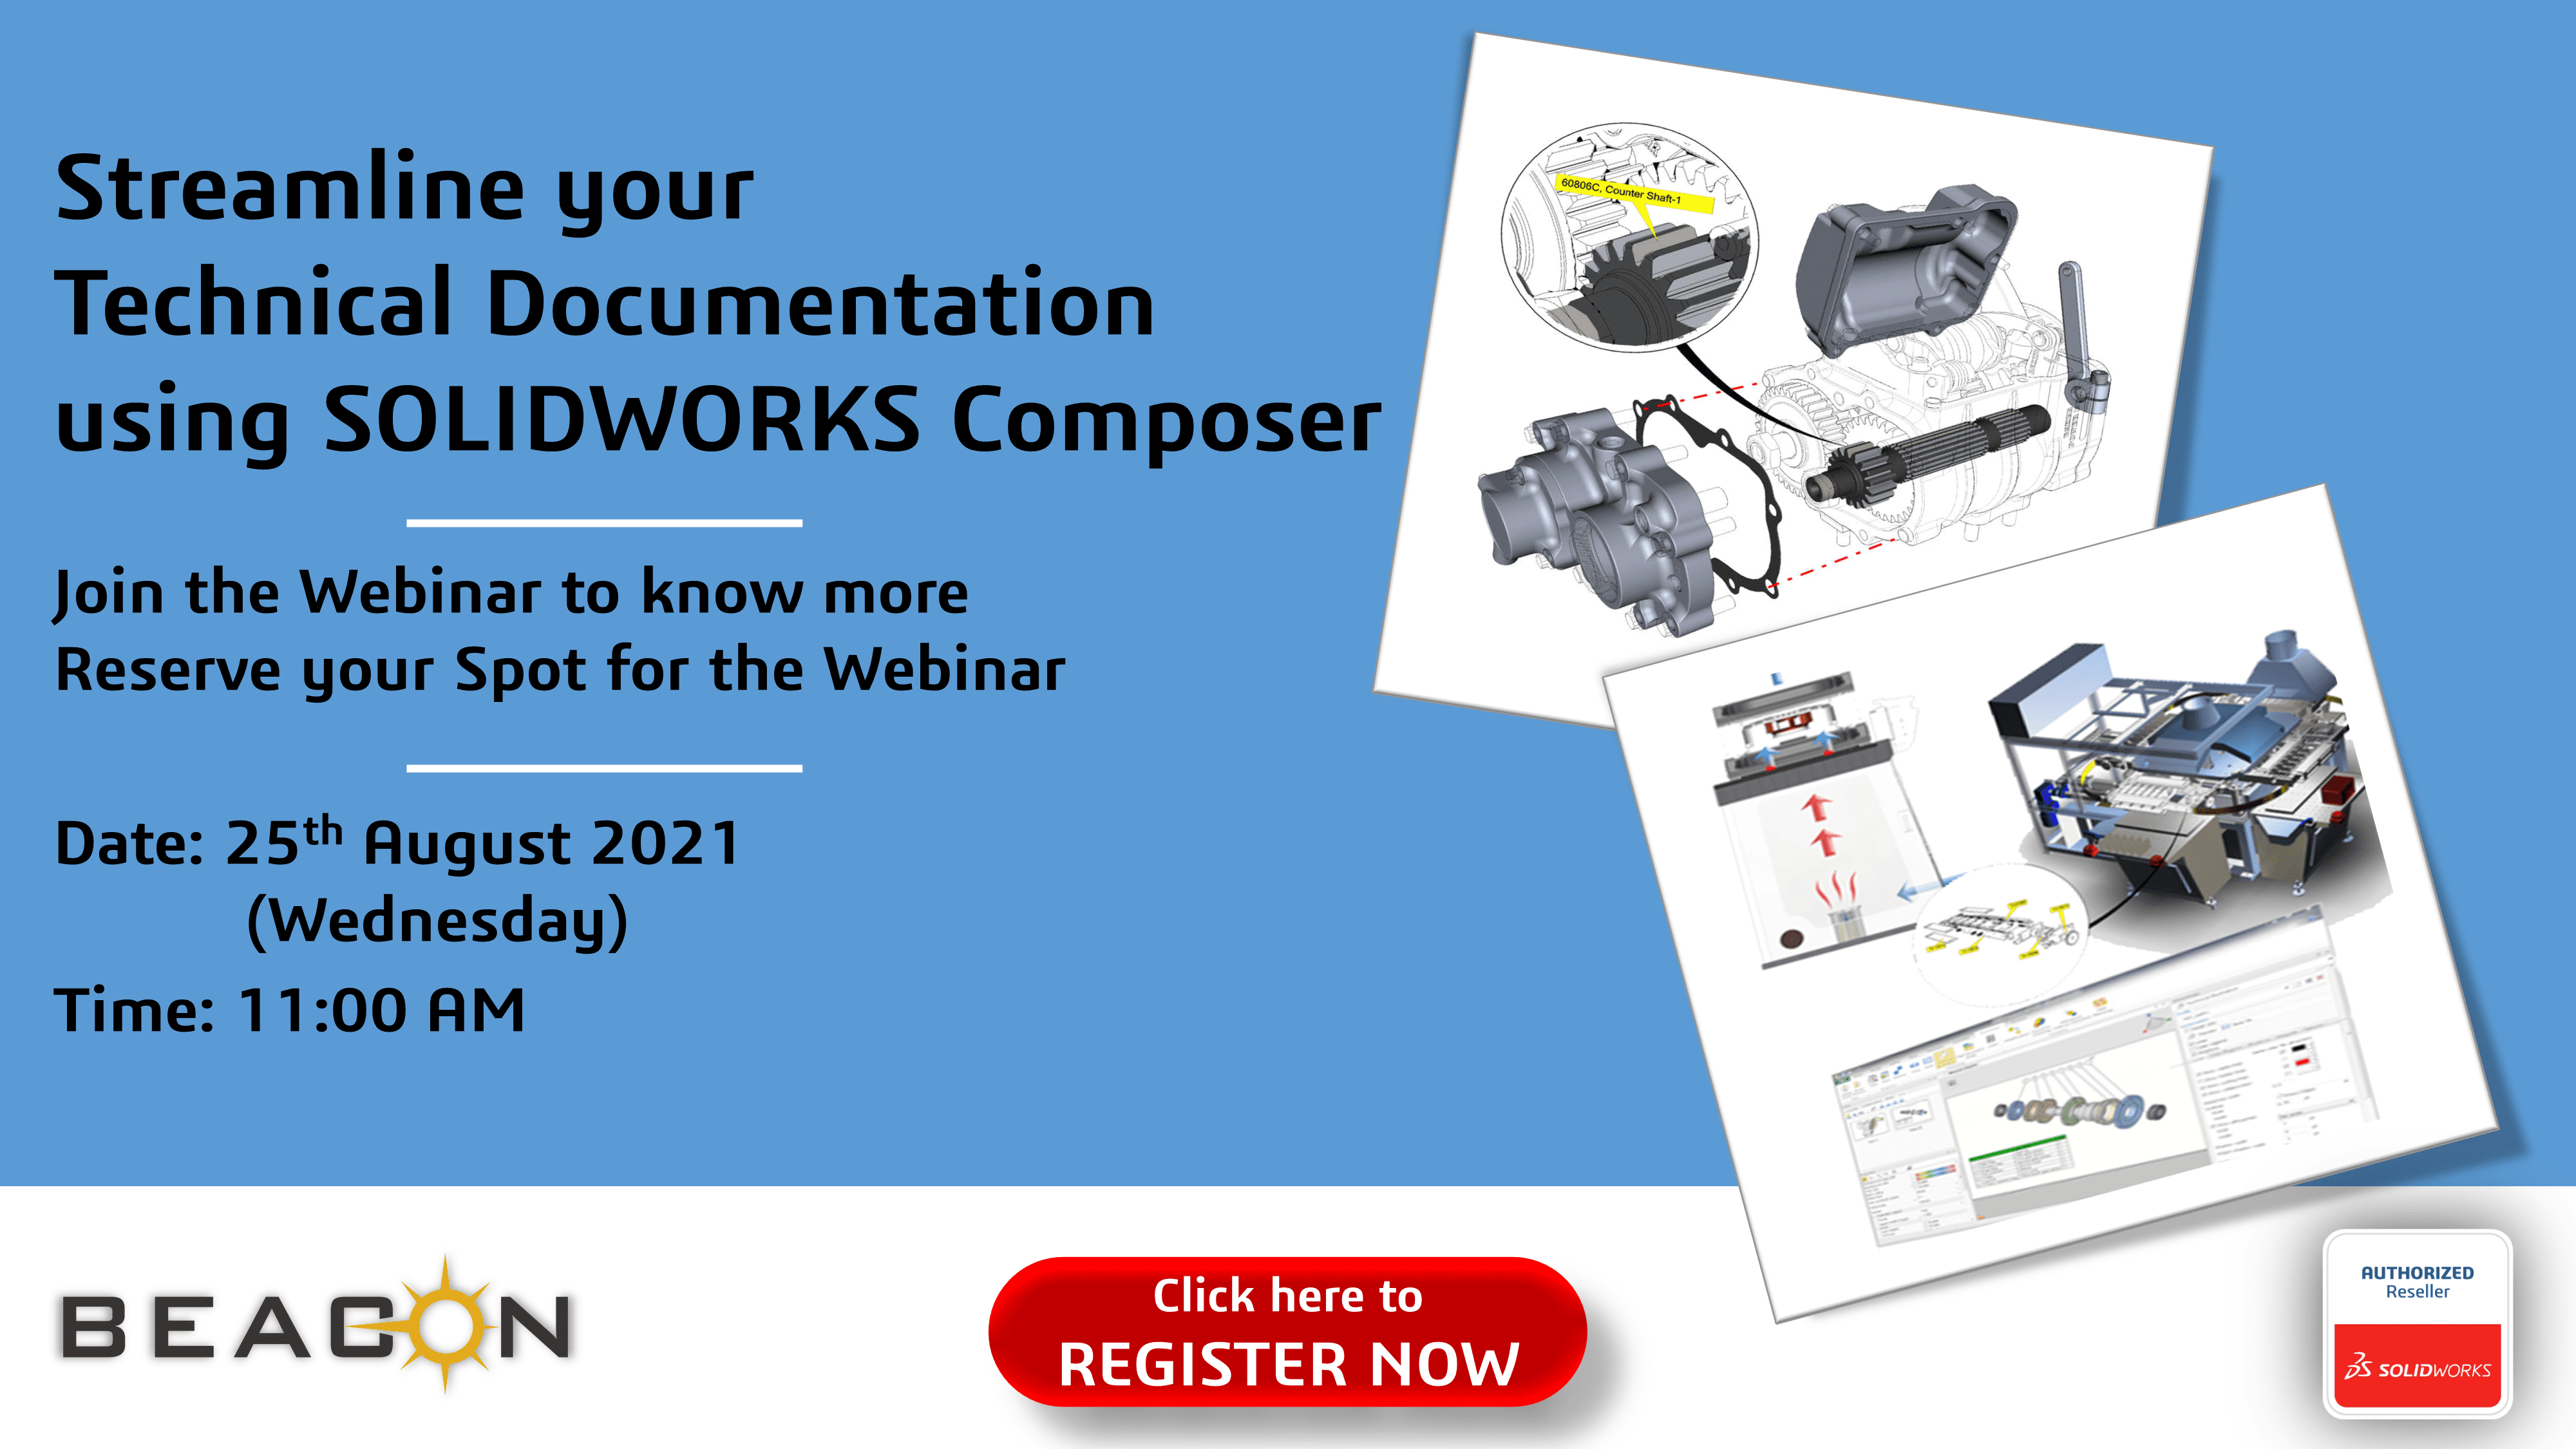 Streamline your Technical Documentation using SOLIDWORKS Composer